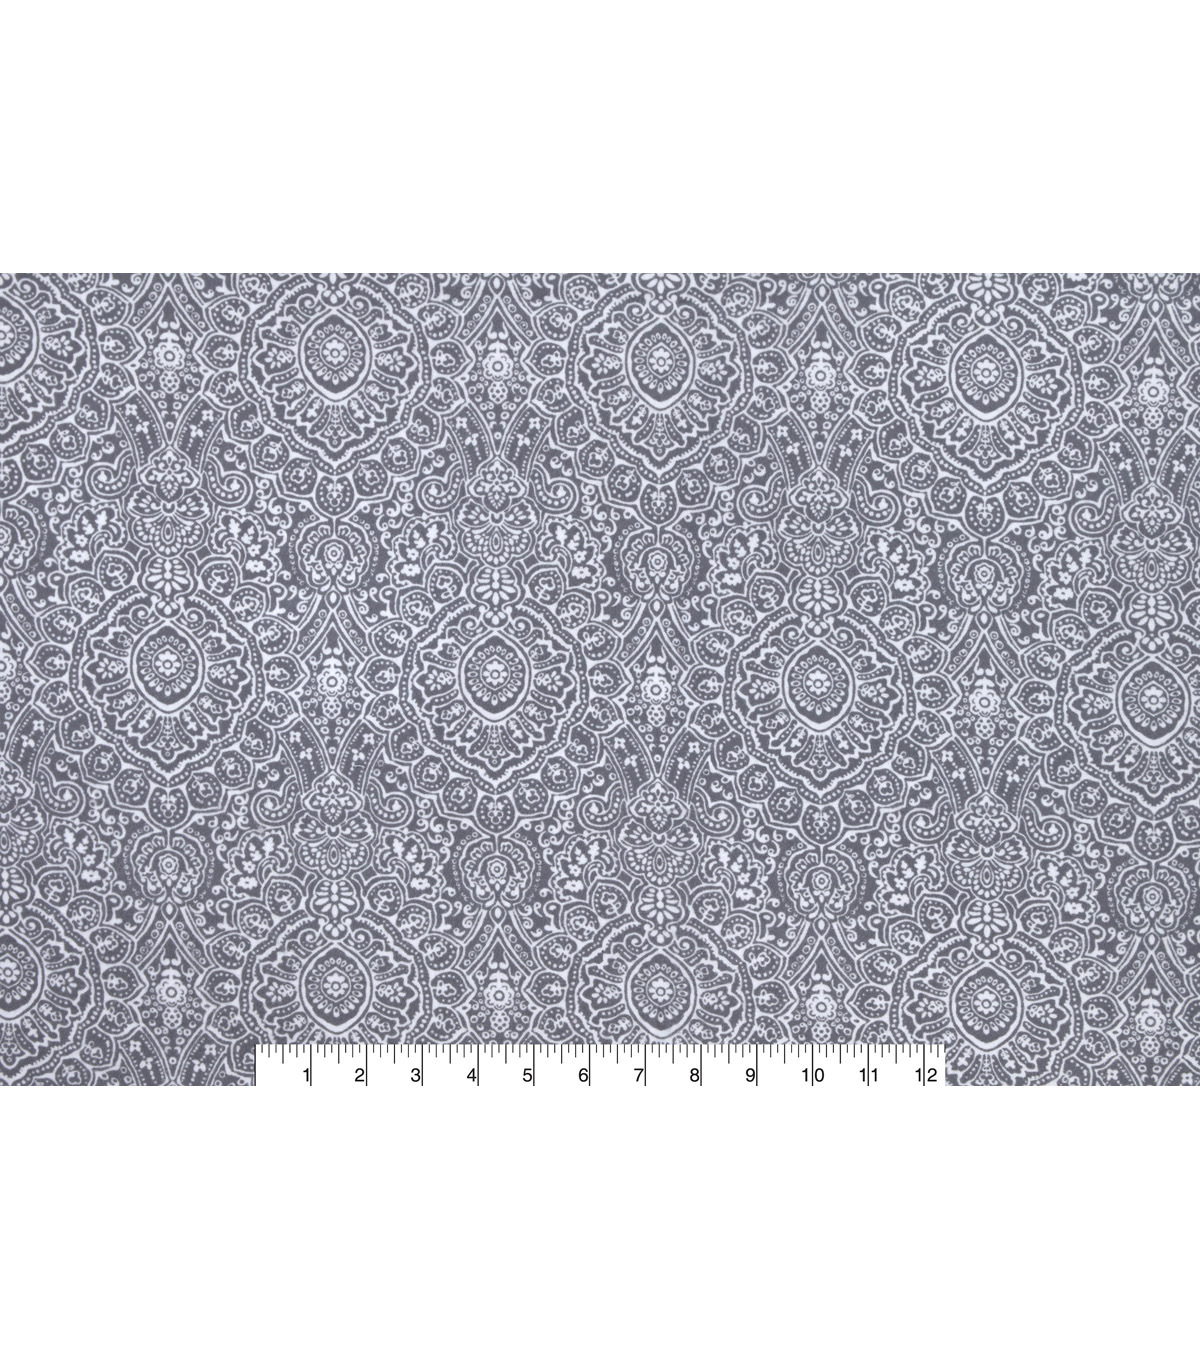 Snuggle Flannel Fabric -Grey Ink Stamp Print